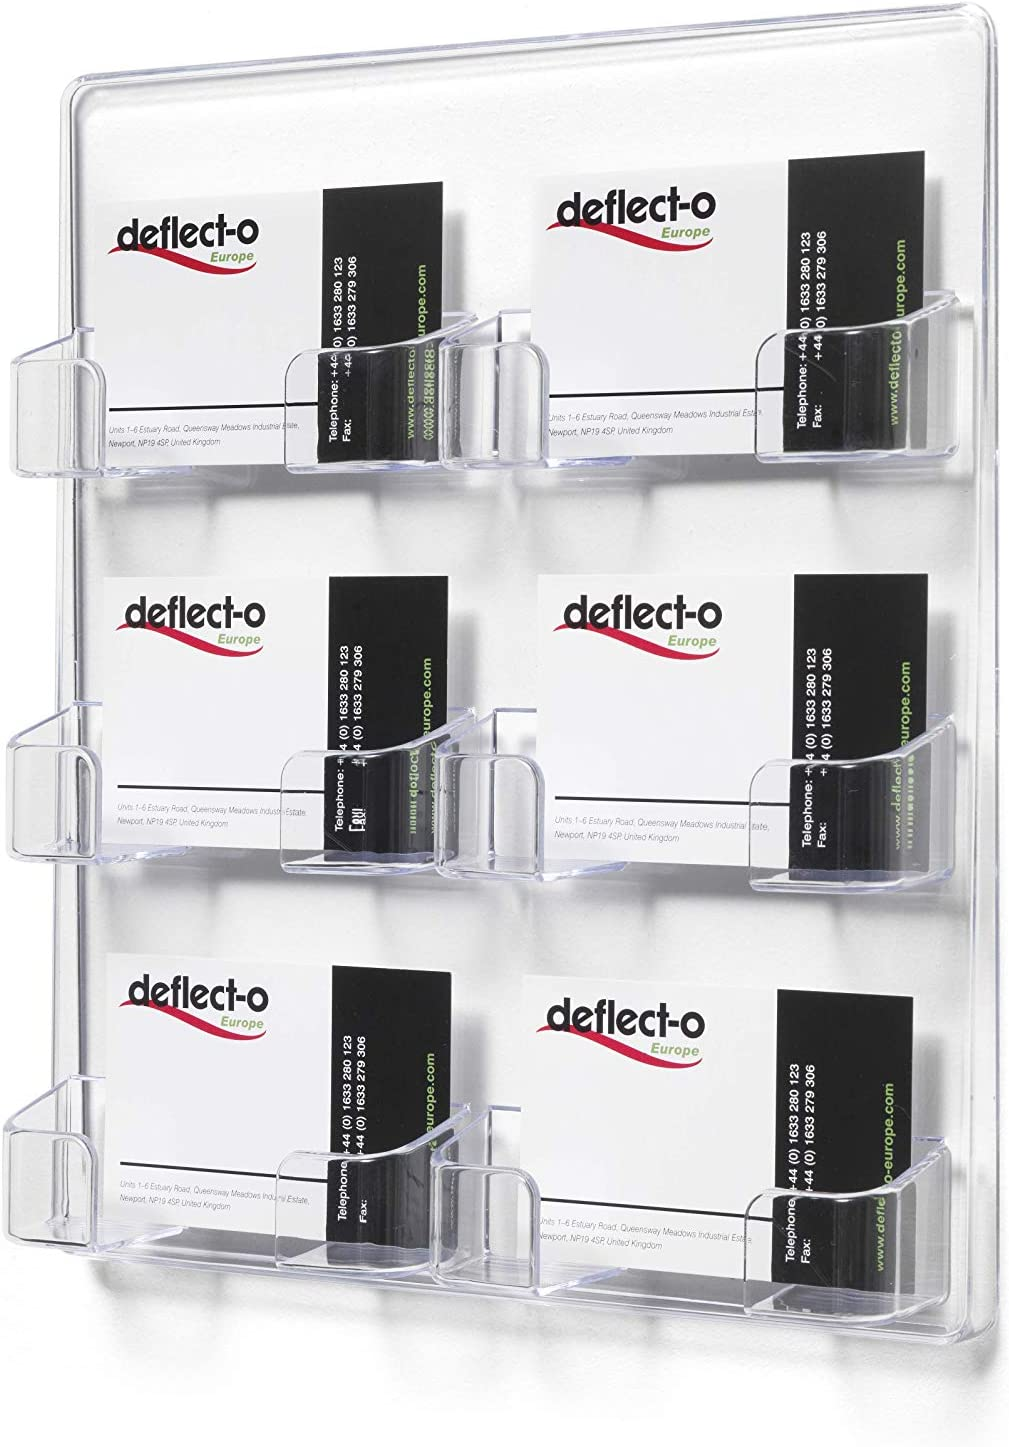 deflect-o 70601 6-Pocket Clear Plastic Wall Mount Business Card Holder, 8-3/8w x 1-1/2d x 9-3/4h